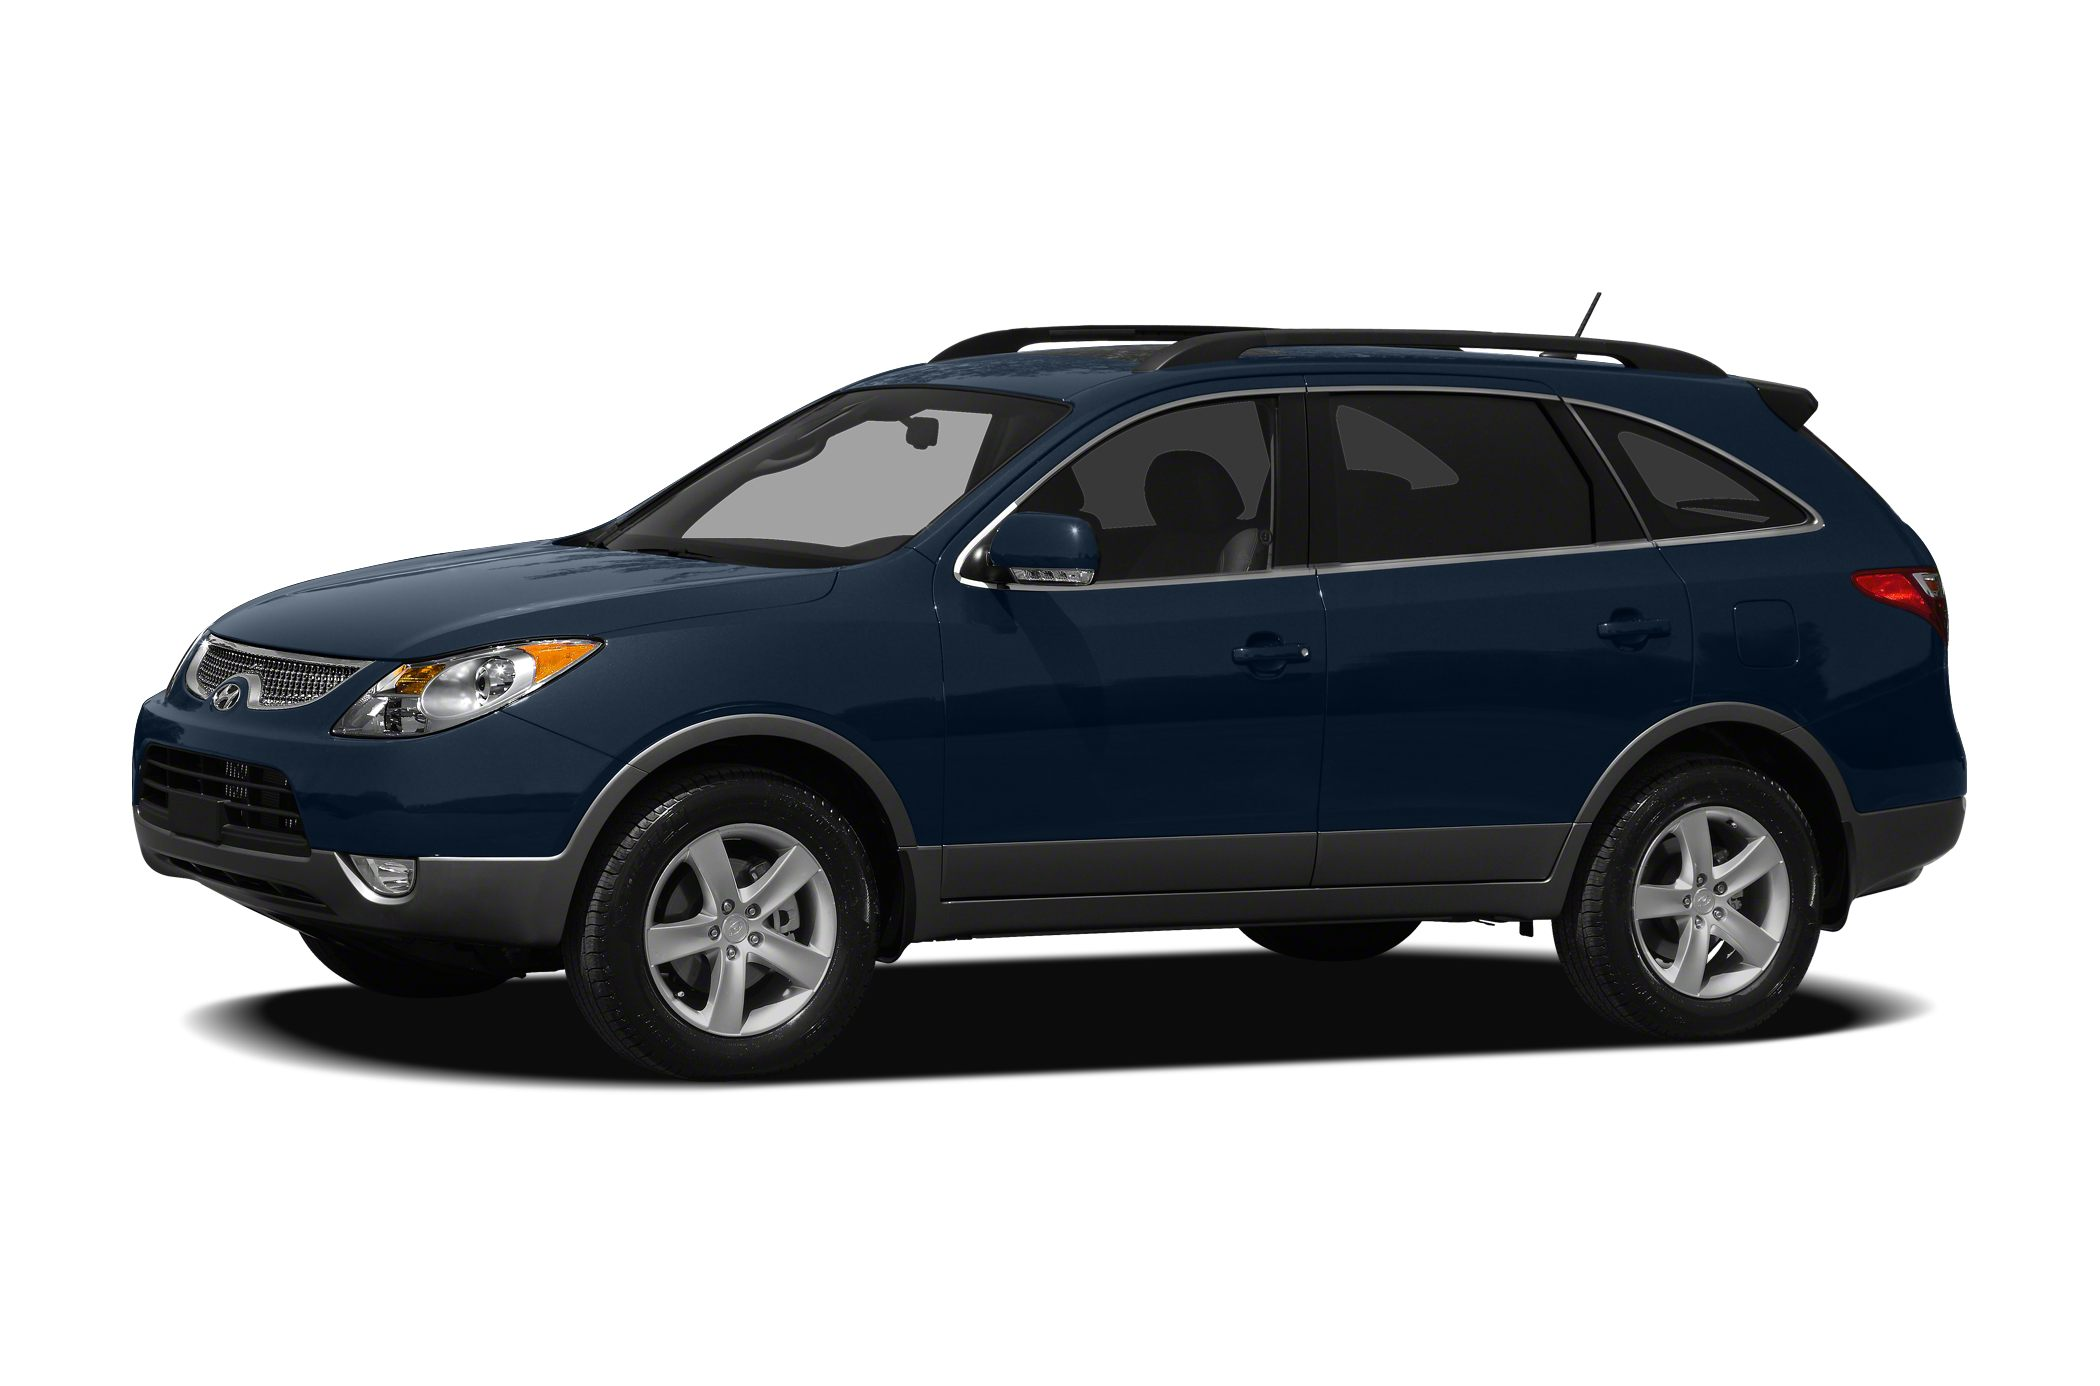 2011 Hyundai Veracruz GLS SUV for sale in Roswell for $17,990 with 48,617 miles